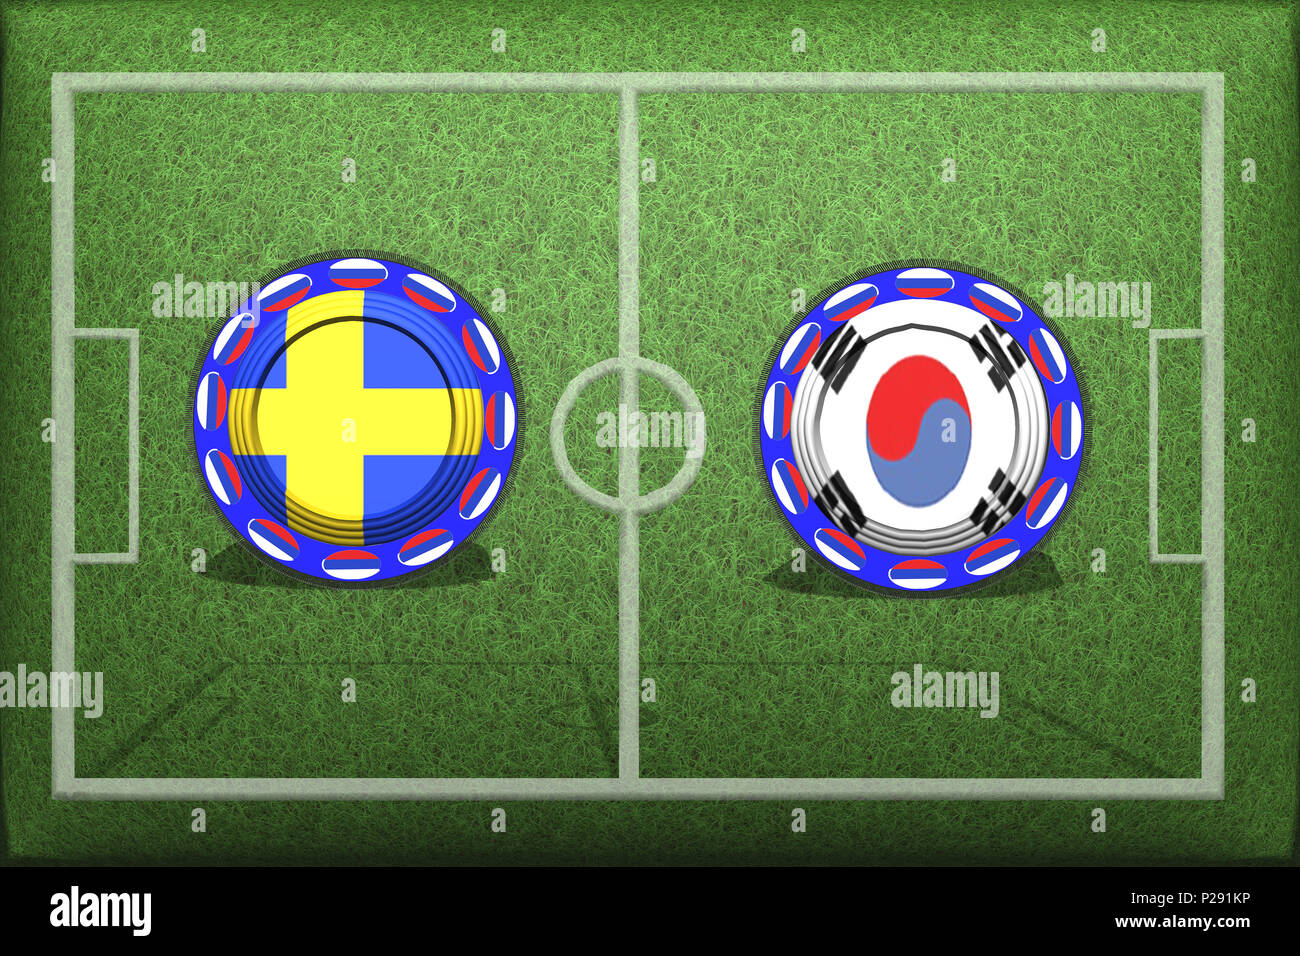 Football, World Cup 2018, Game Group F, Sweden - South Korea, Monday, June 18, Button with national flags on the green grass. - Stock Image